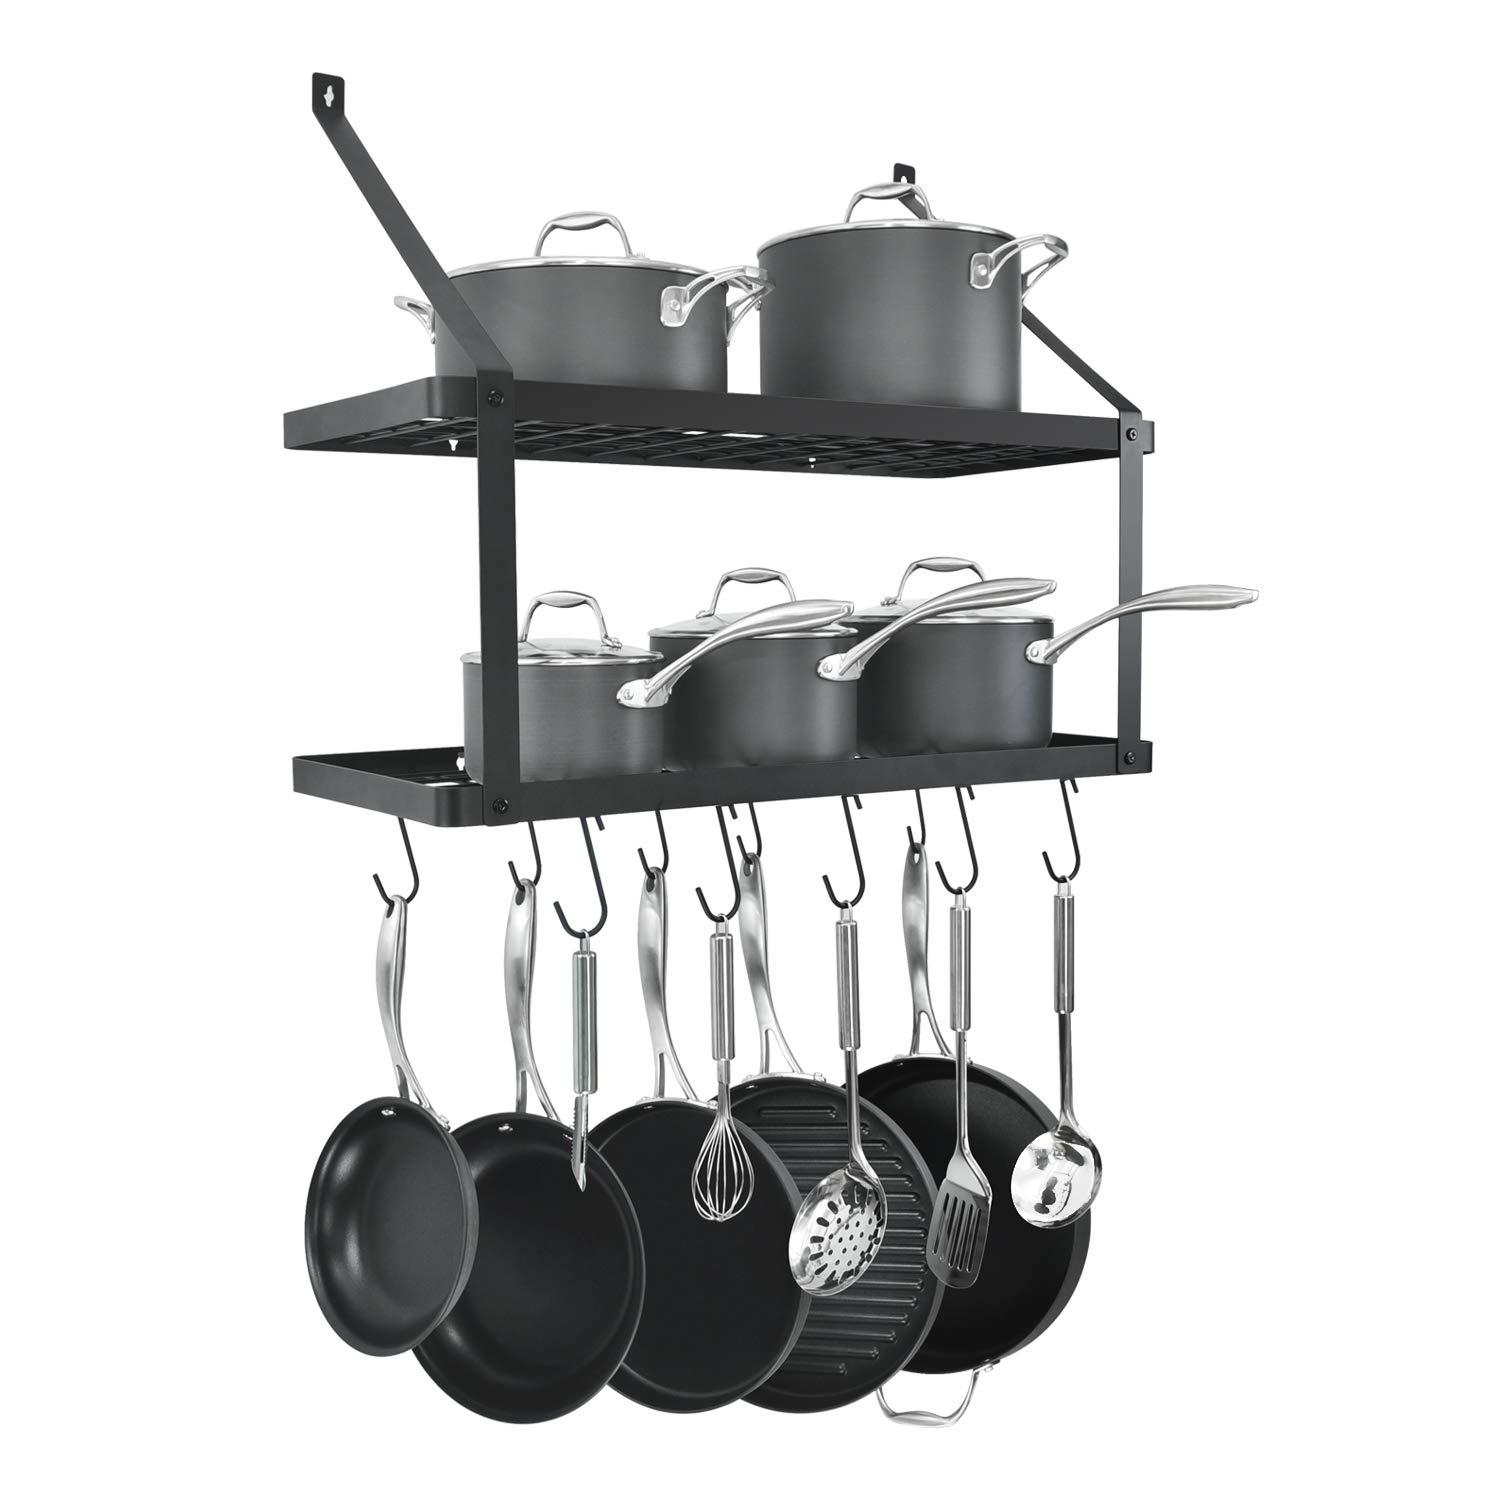 HomeLifairy Wall Mounted Double Pot Shelf Rack Pan With 10 Pot And Pan Hanging Hooks For Home Kitchen,Restaurant